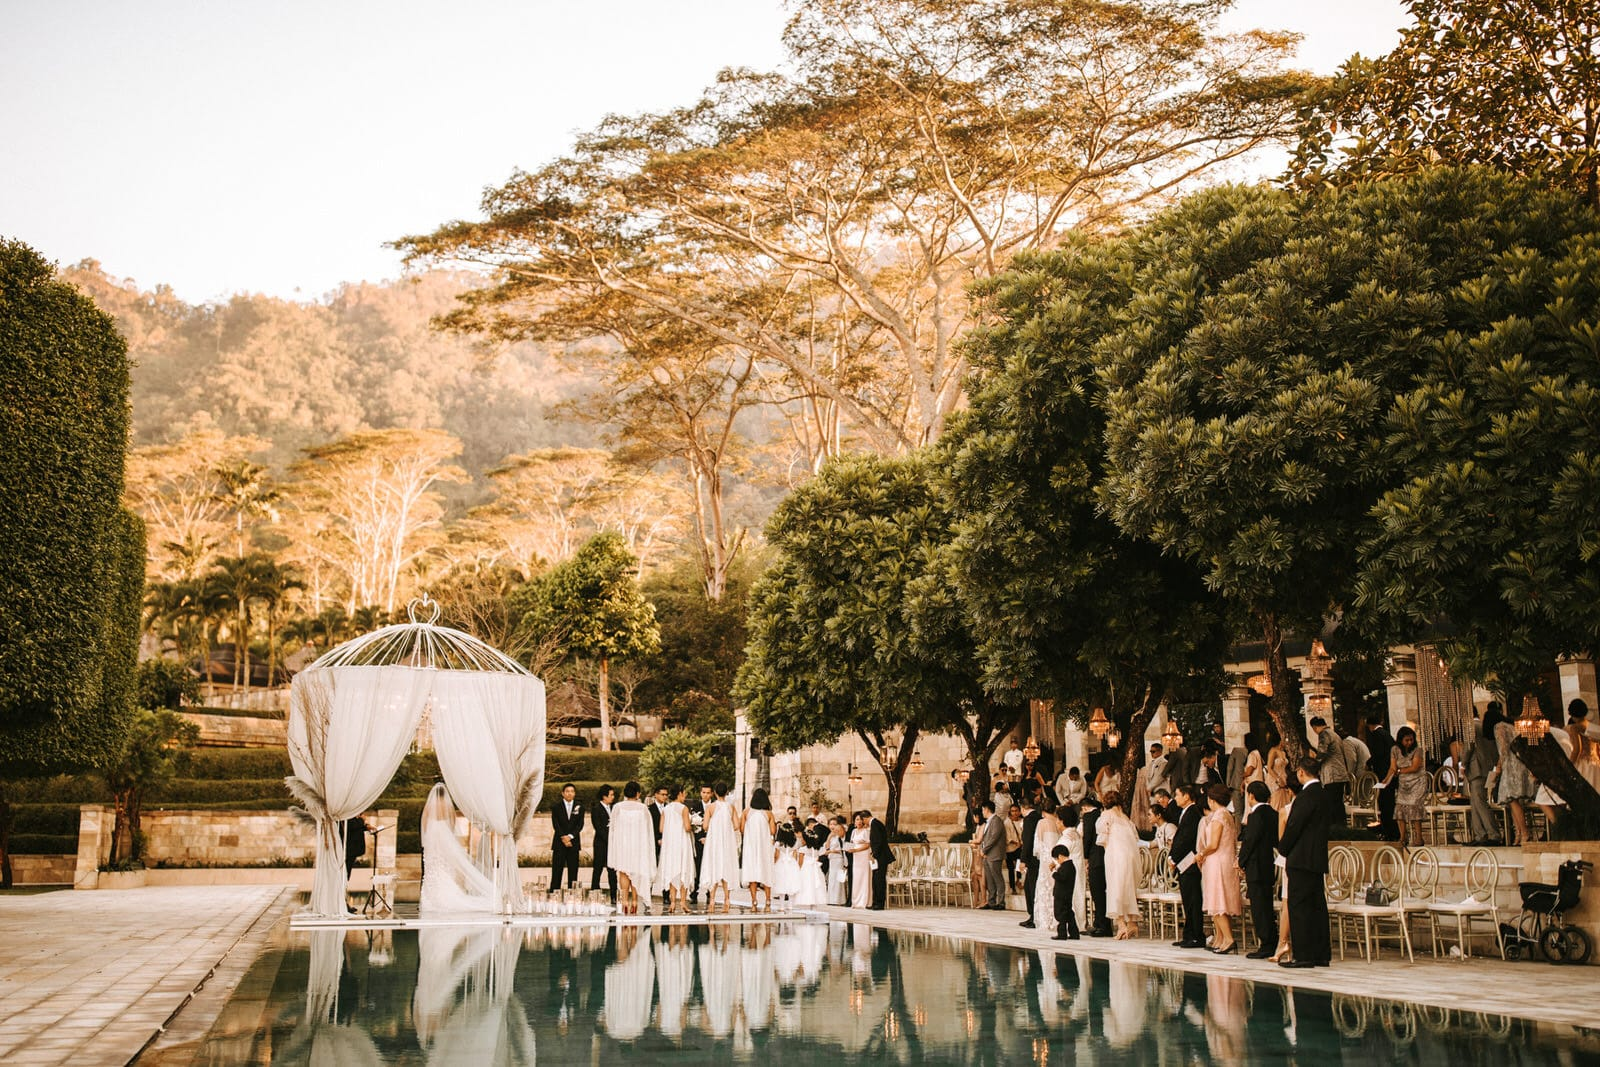 The Amanjiwo Wedding features a swimming pool and a small tent.